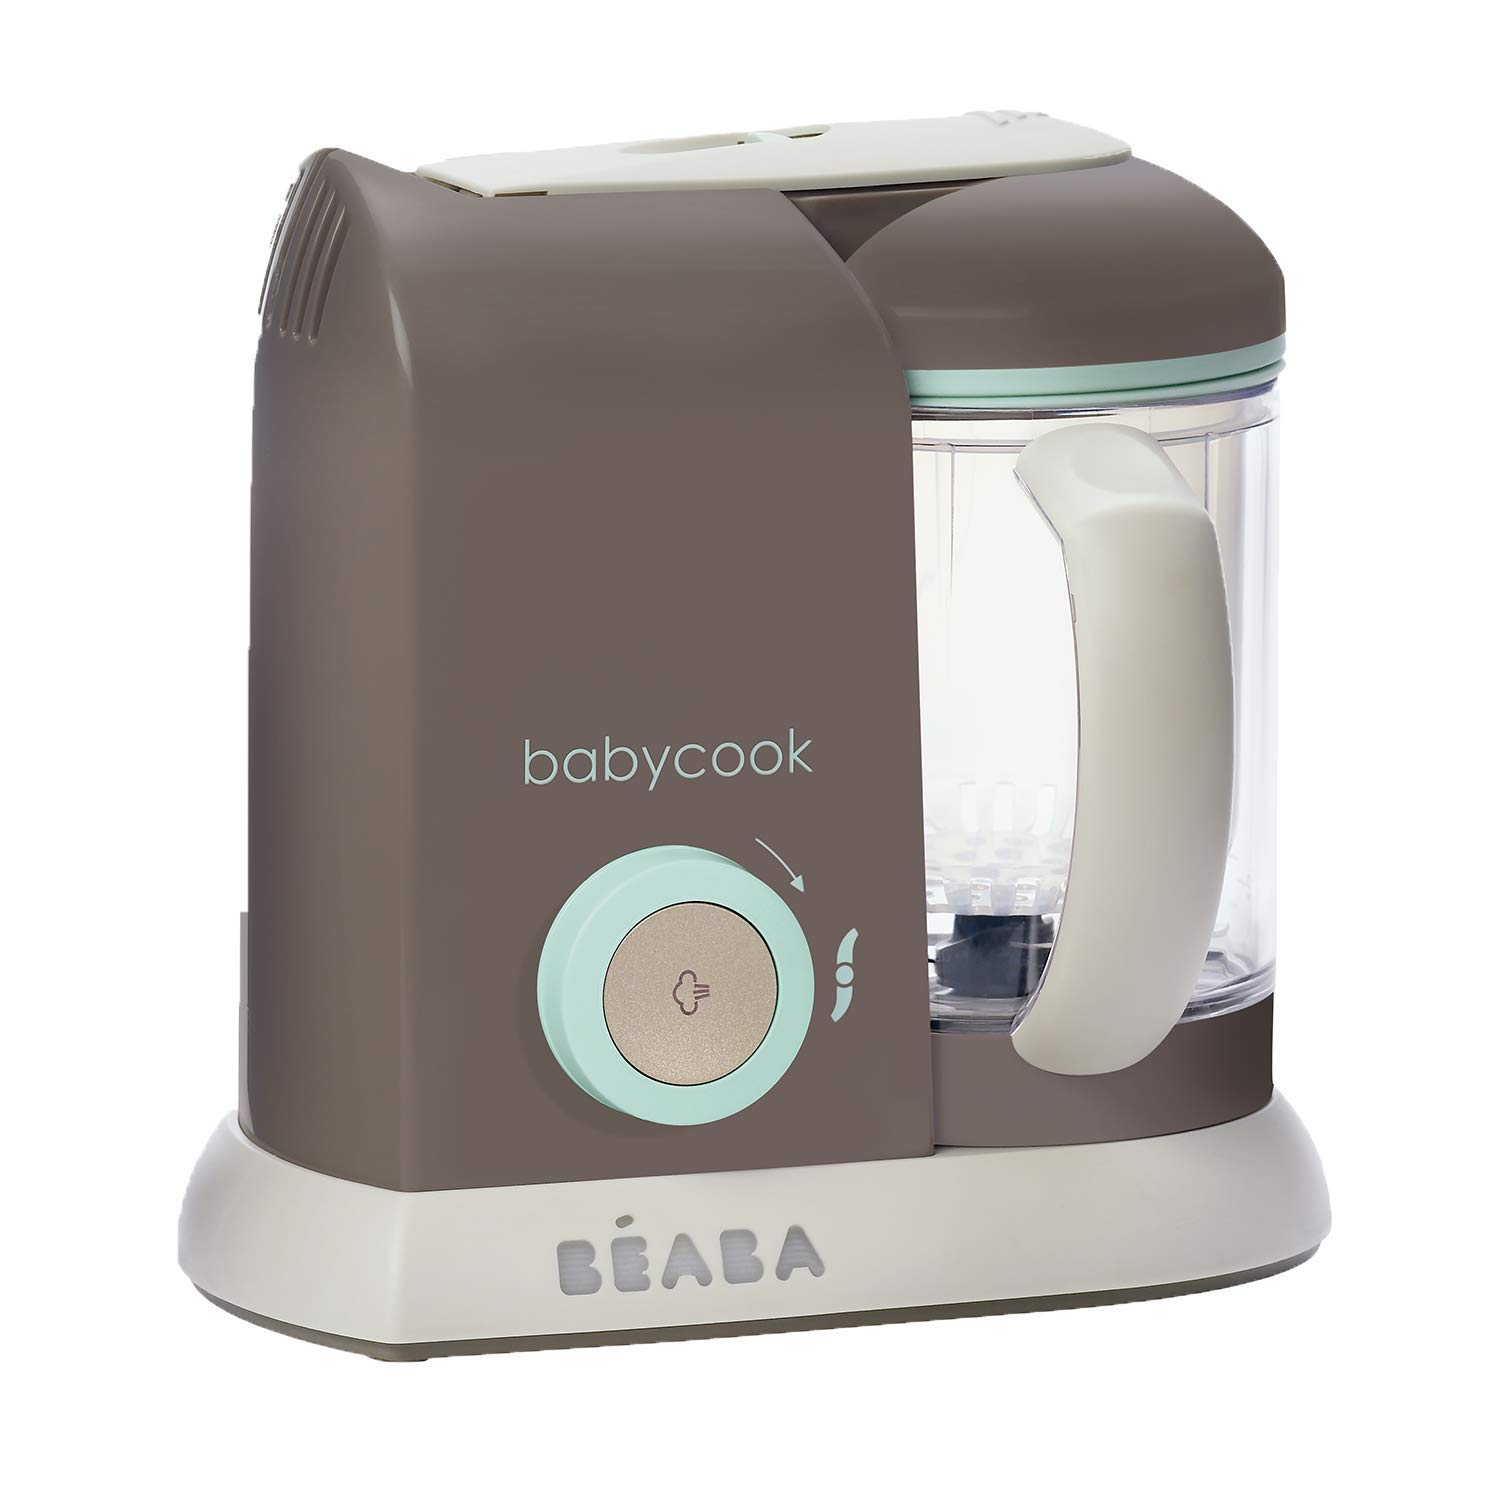 Babycook 4 in 1 Steam Cooker and Blender